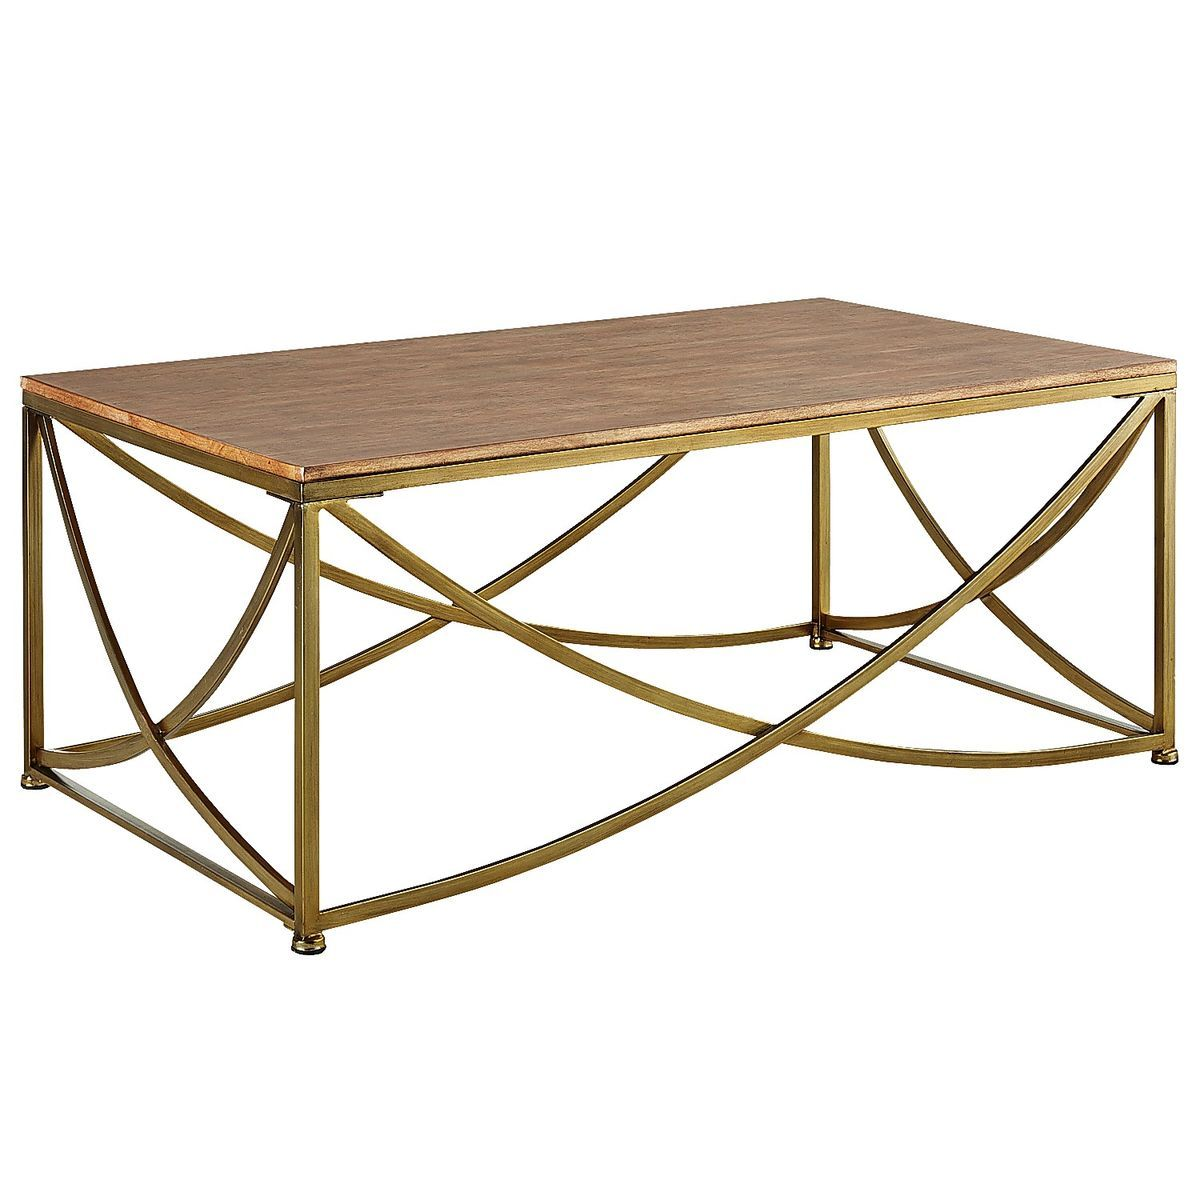 Dakota Modern Coffee Table | Pier 1 Imports | Living room accent ...